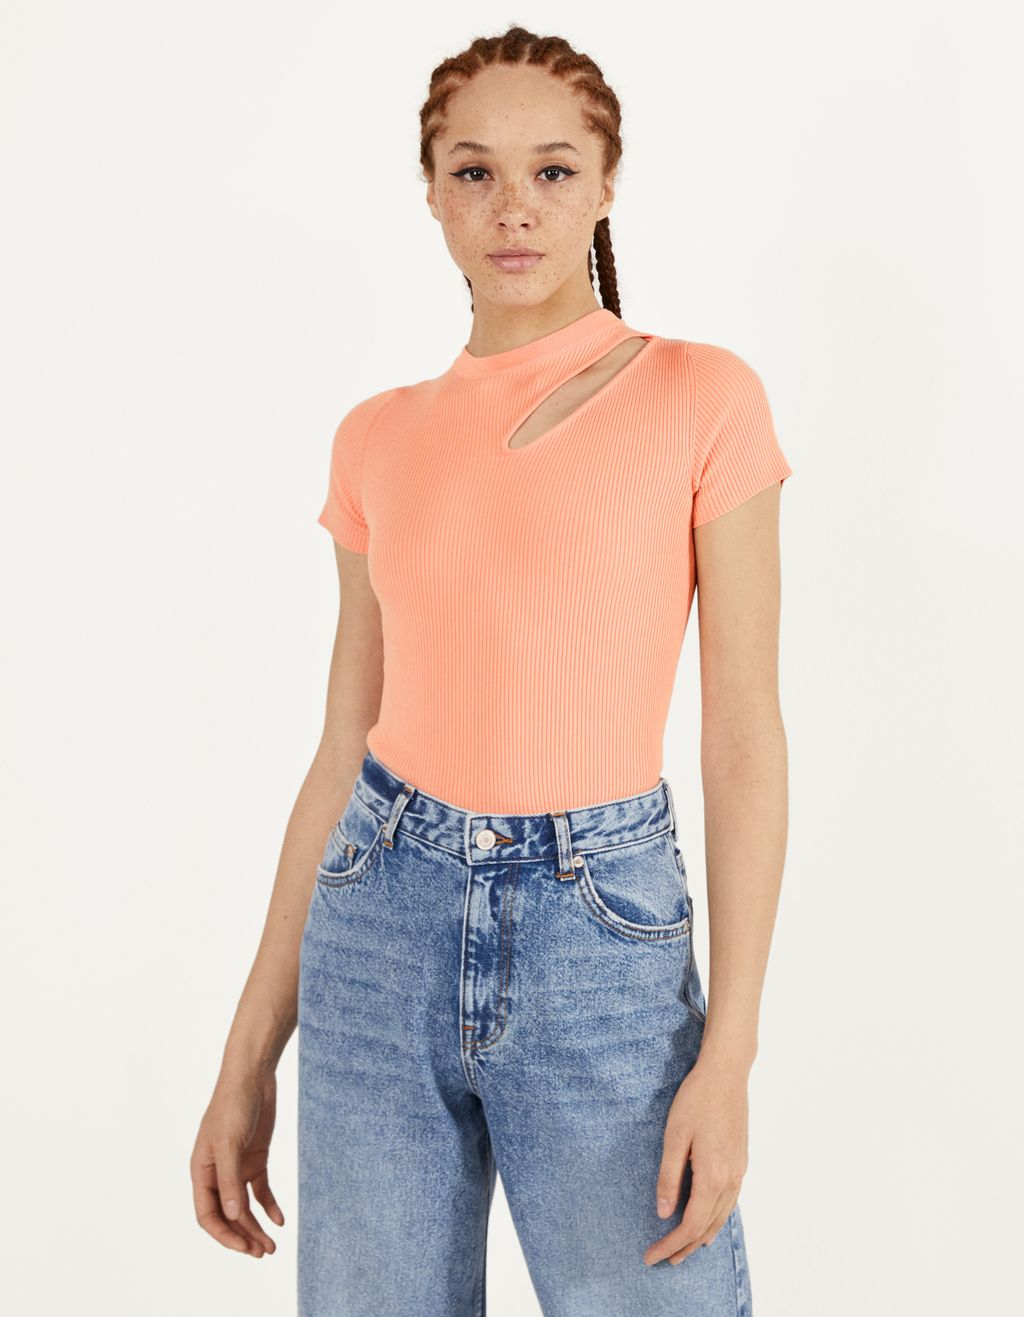 Top with cut-out detail on the shoulder